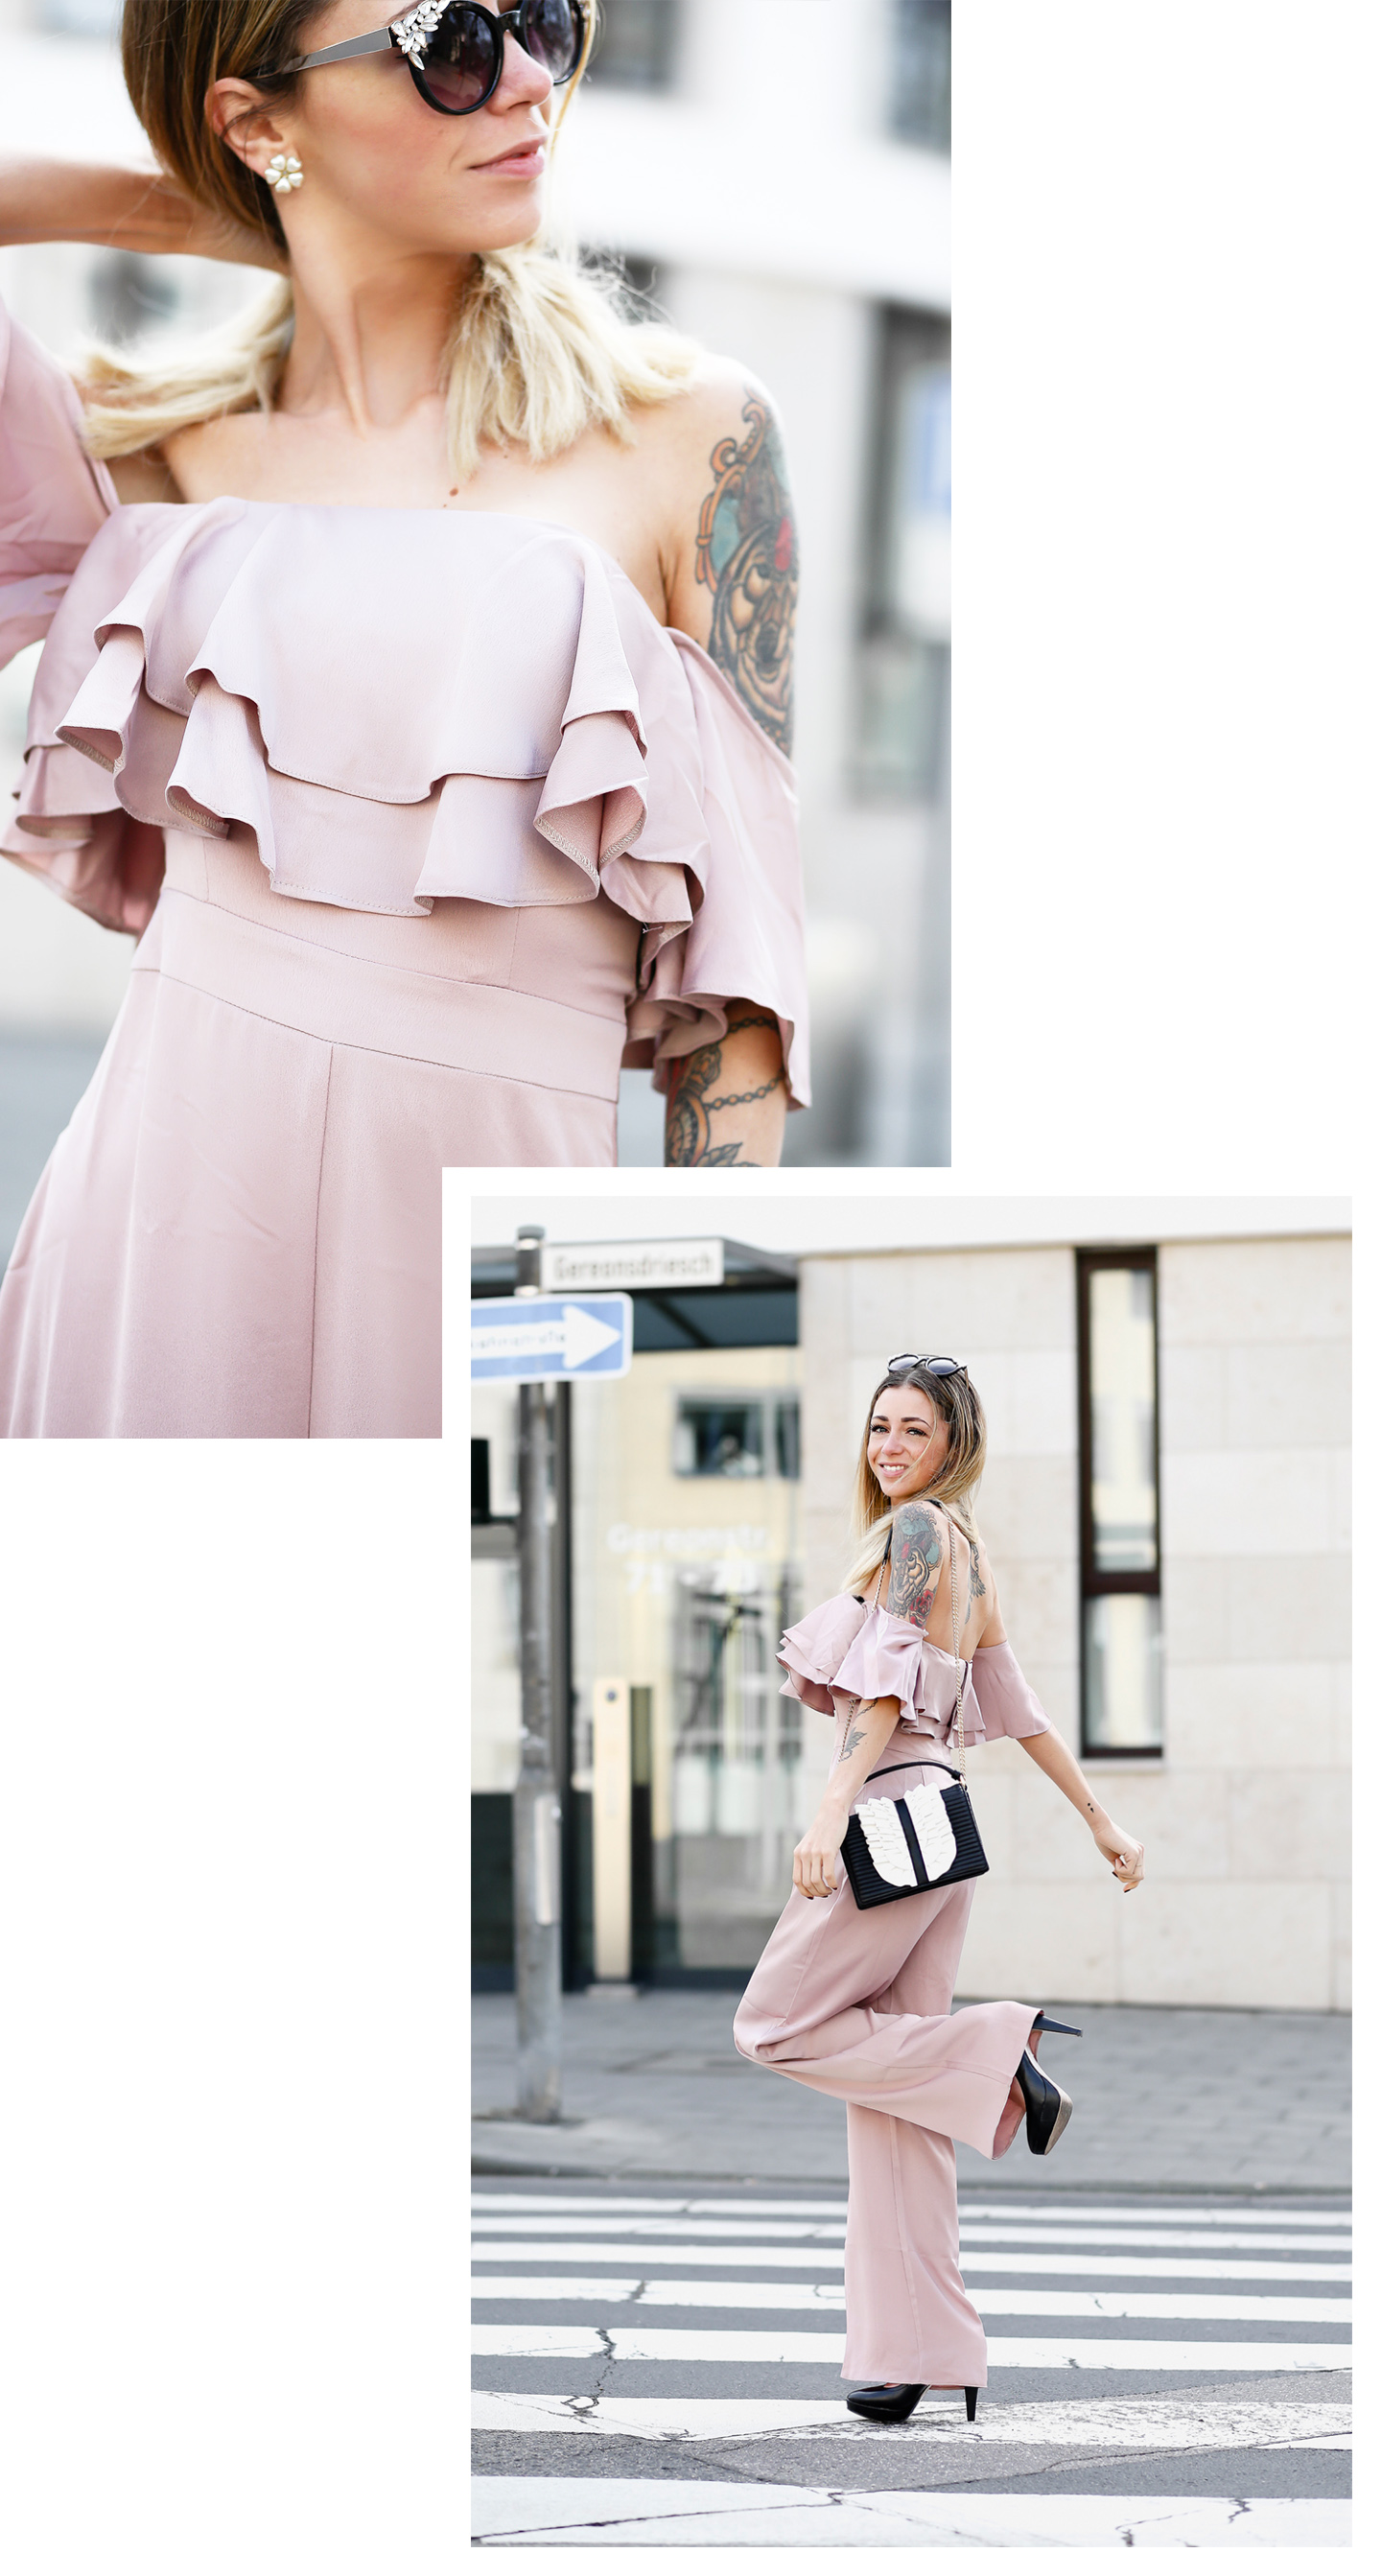 modeblog-fashionblog-outfit-ootd-koeln-jumpsuit-moschino-bag-spring-2017-style